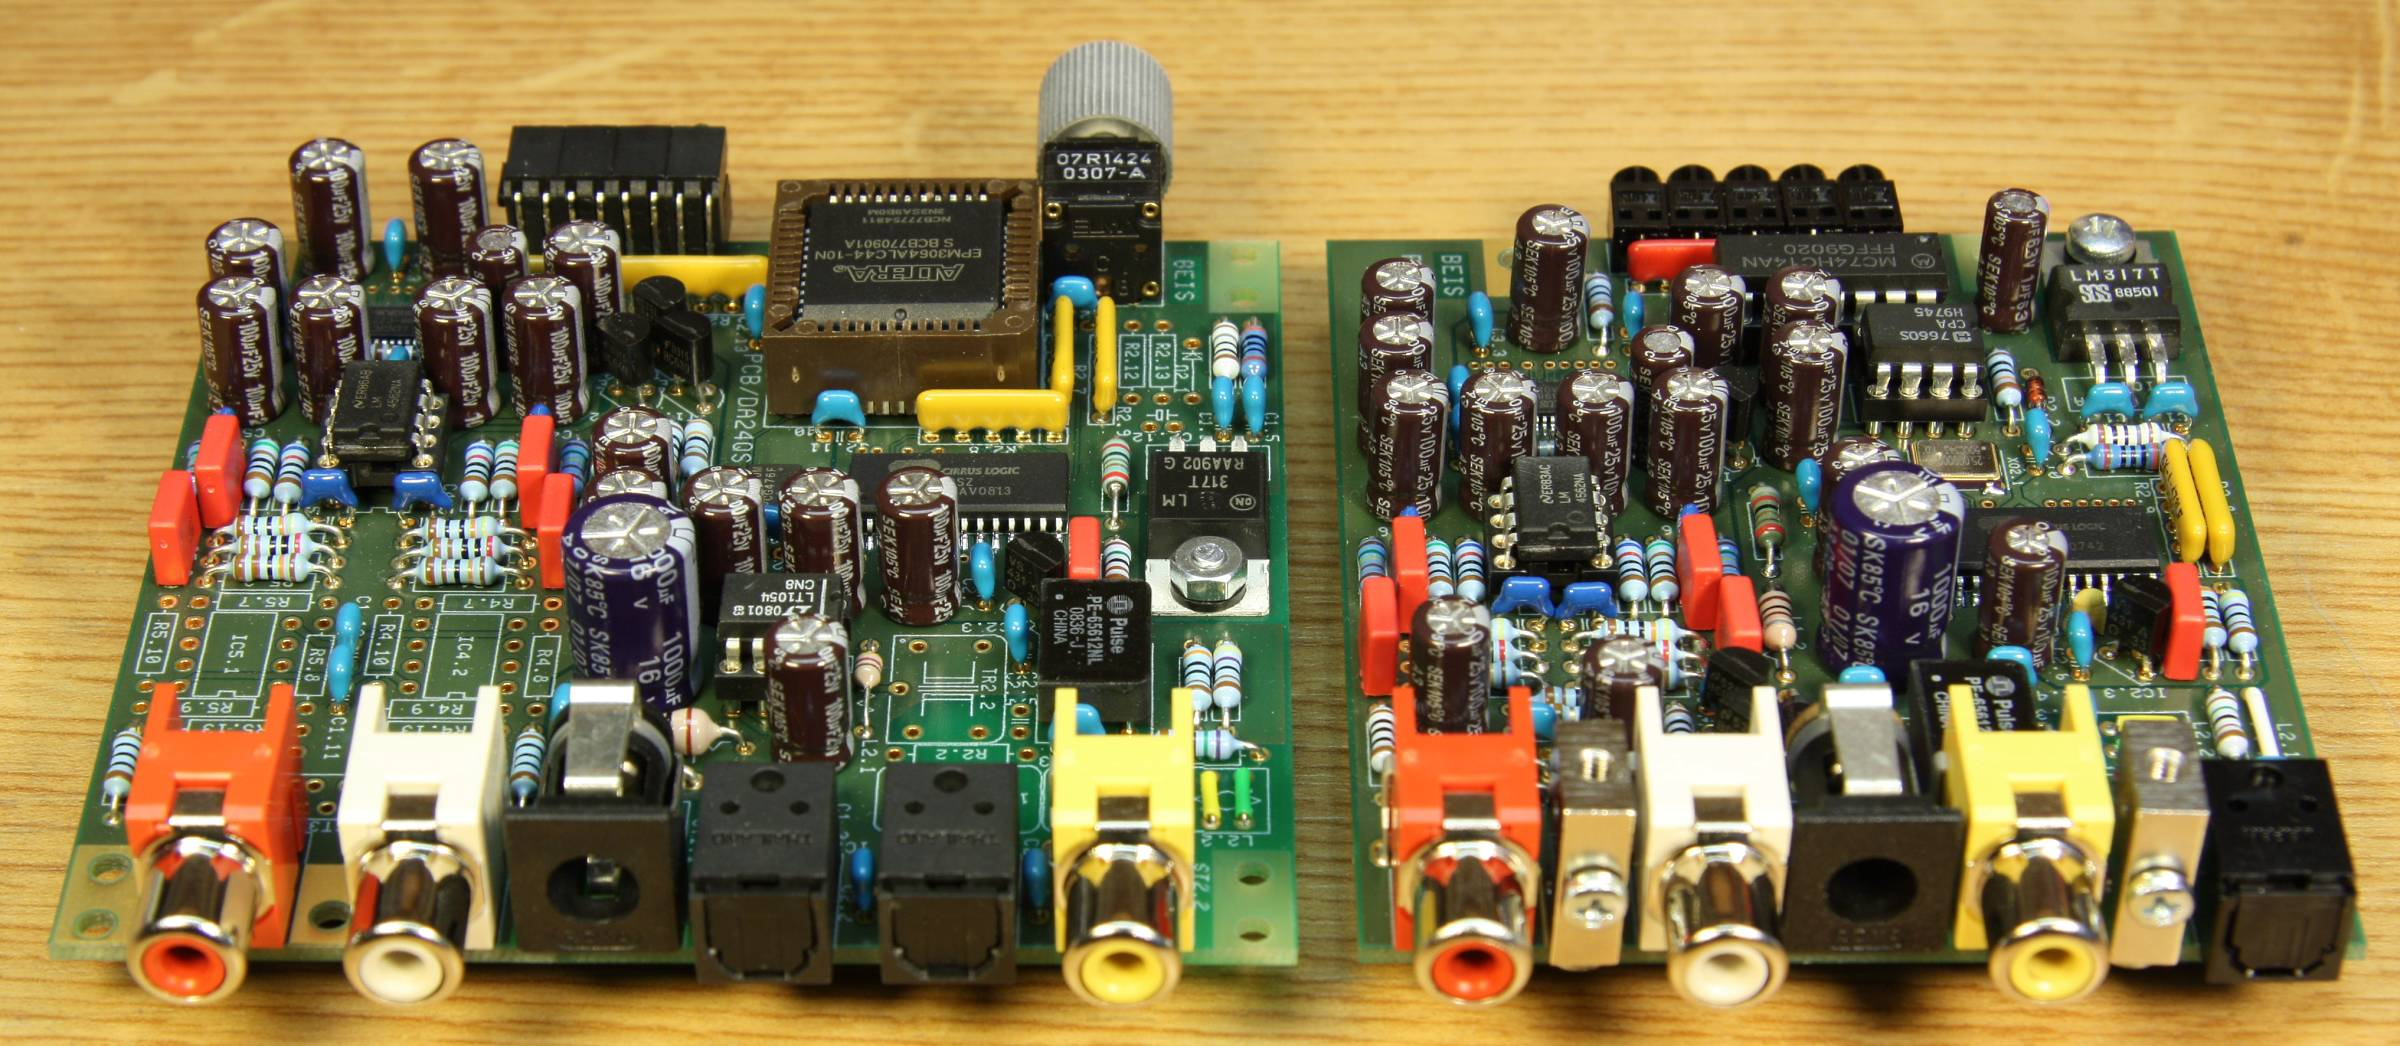 Da24qs And Da24ds Audio Digital To Analog Converters 24 Bit 192 Doityourself Diy Double Sided Pcb Circuit Board Etching Do It All Connections Are Made On The Rear When No Signal Is Present Both Dacs Generate Their Own Zero At A Rate Of 96 Khz